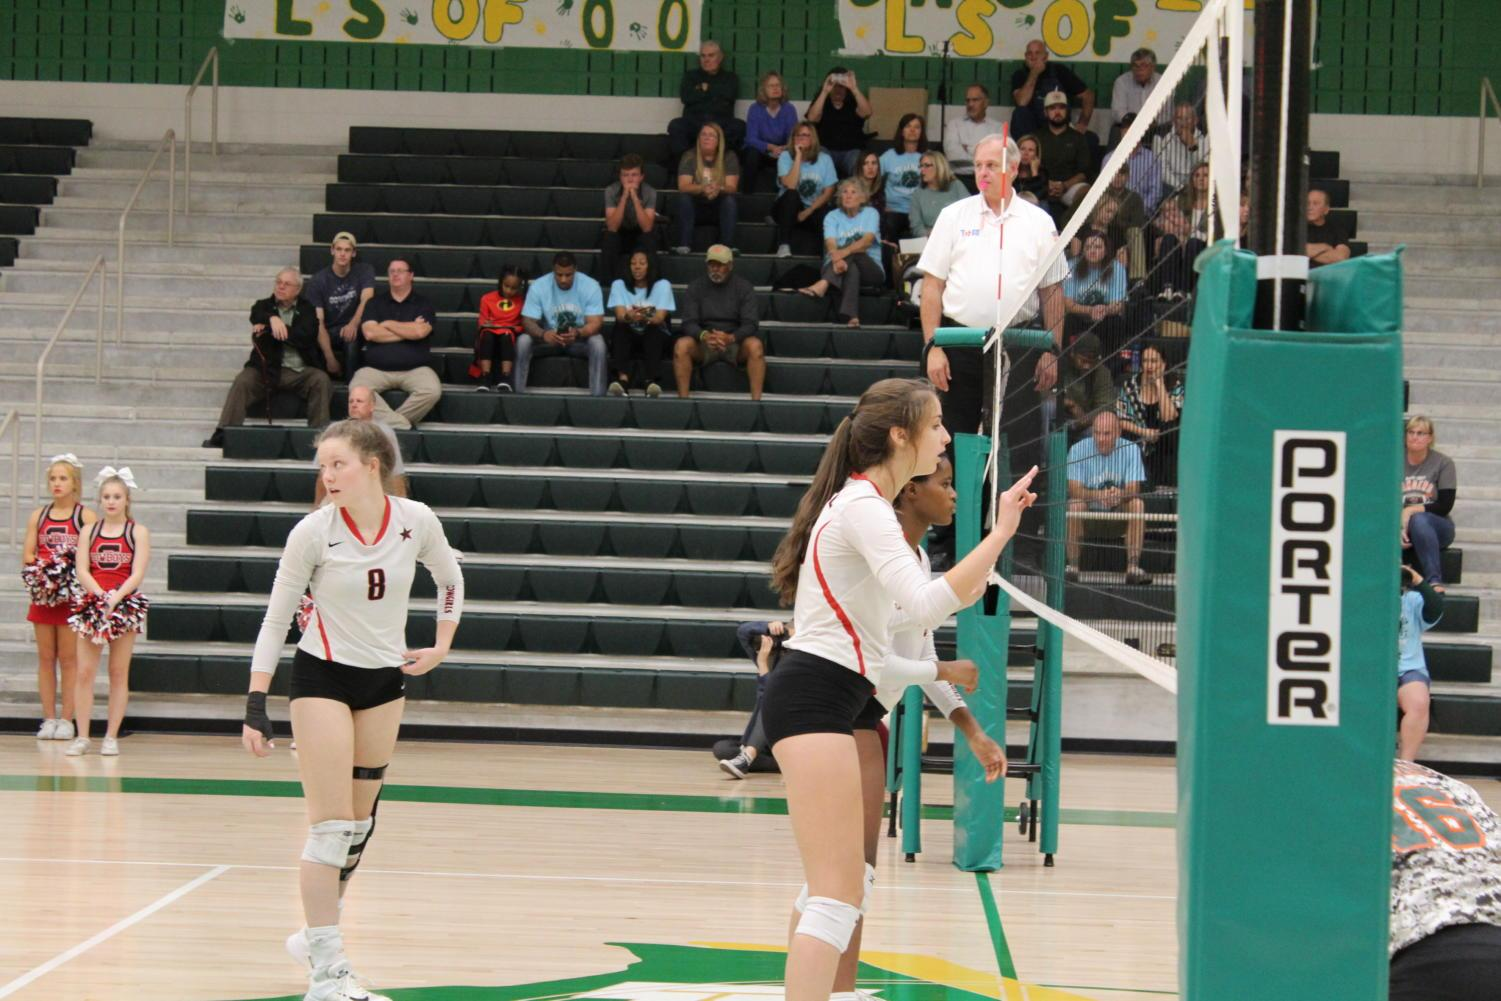 Coppell High School seniors Amanda Colon, Riley Ross and junior Amarachi Osuji play defense  against Lebanon Trail High School  Monday night at Frisco Lebanon Trail's gymnasium. The Cowgirls defeated the Lady Rangers in  three sets 25-8, 25-15, 25-20 to advance to the area round of the 6A state playoffs.